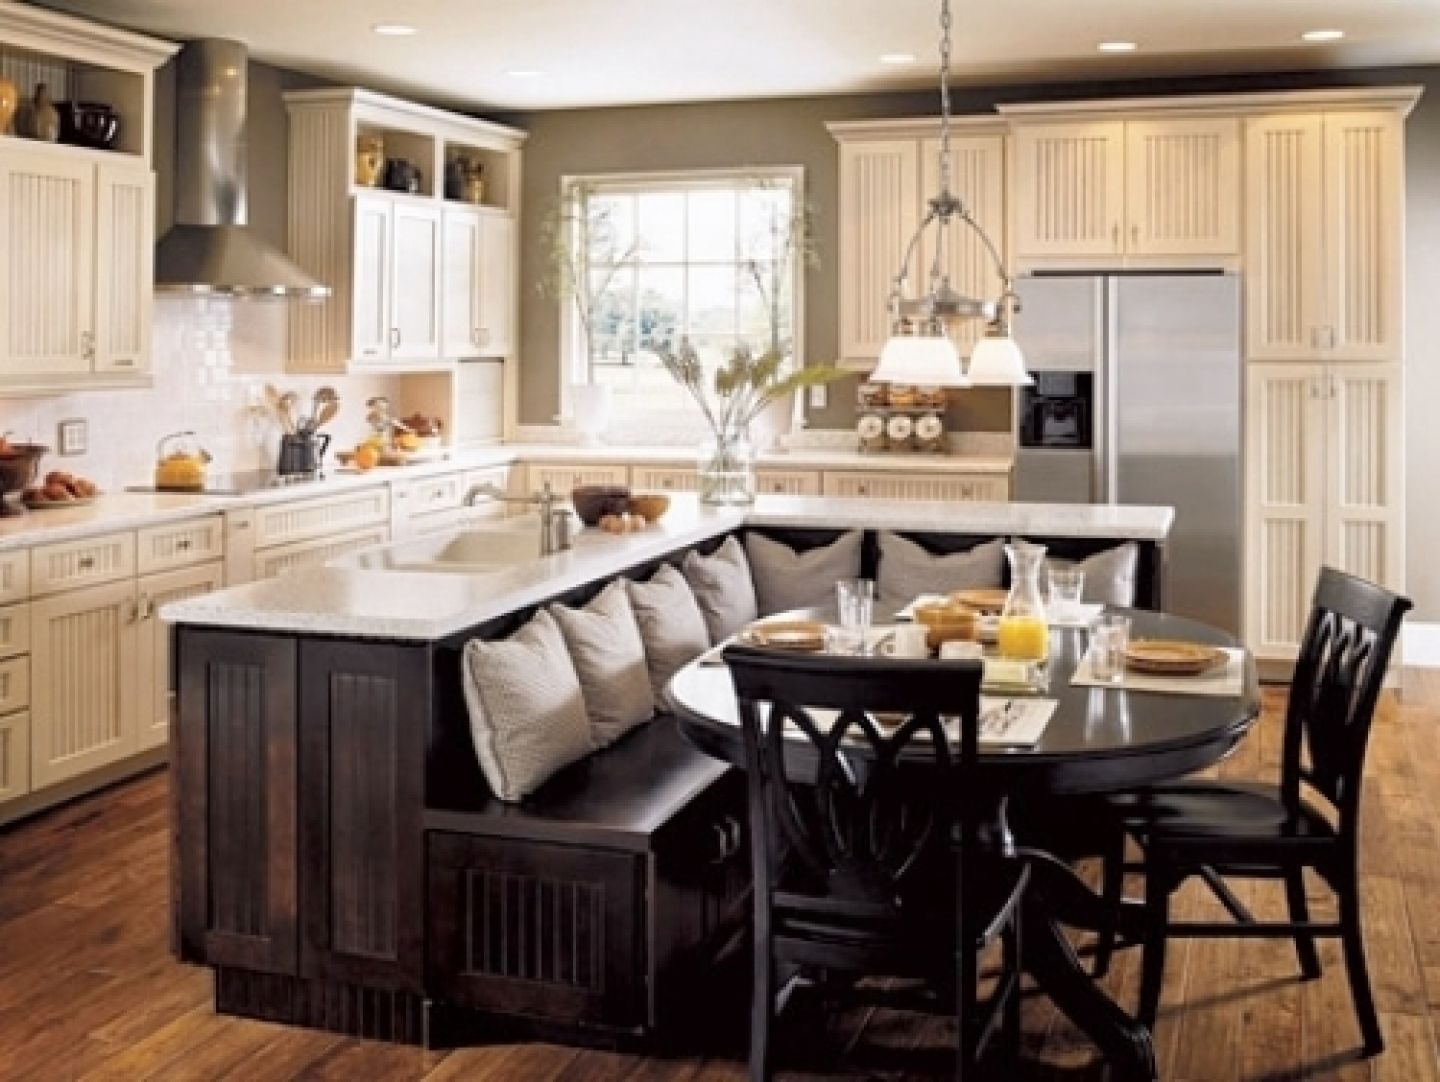 L Shaped Kitchen Designs With Island L Shaped Modular Kitchen L Shaped Kitchen Is Kitchen Remodel Small Kitchen Island With Seating Kitchen Island Dining Table